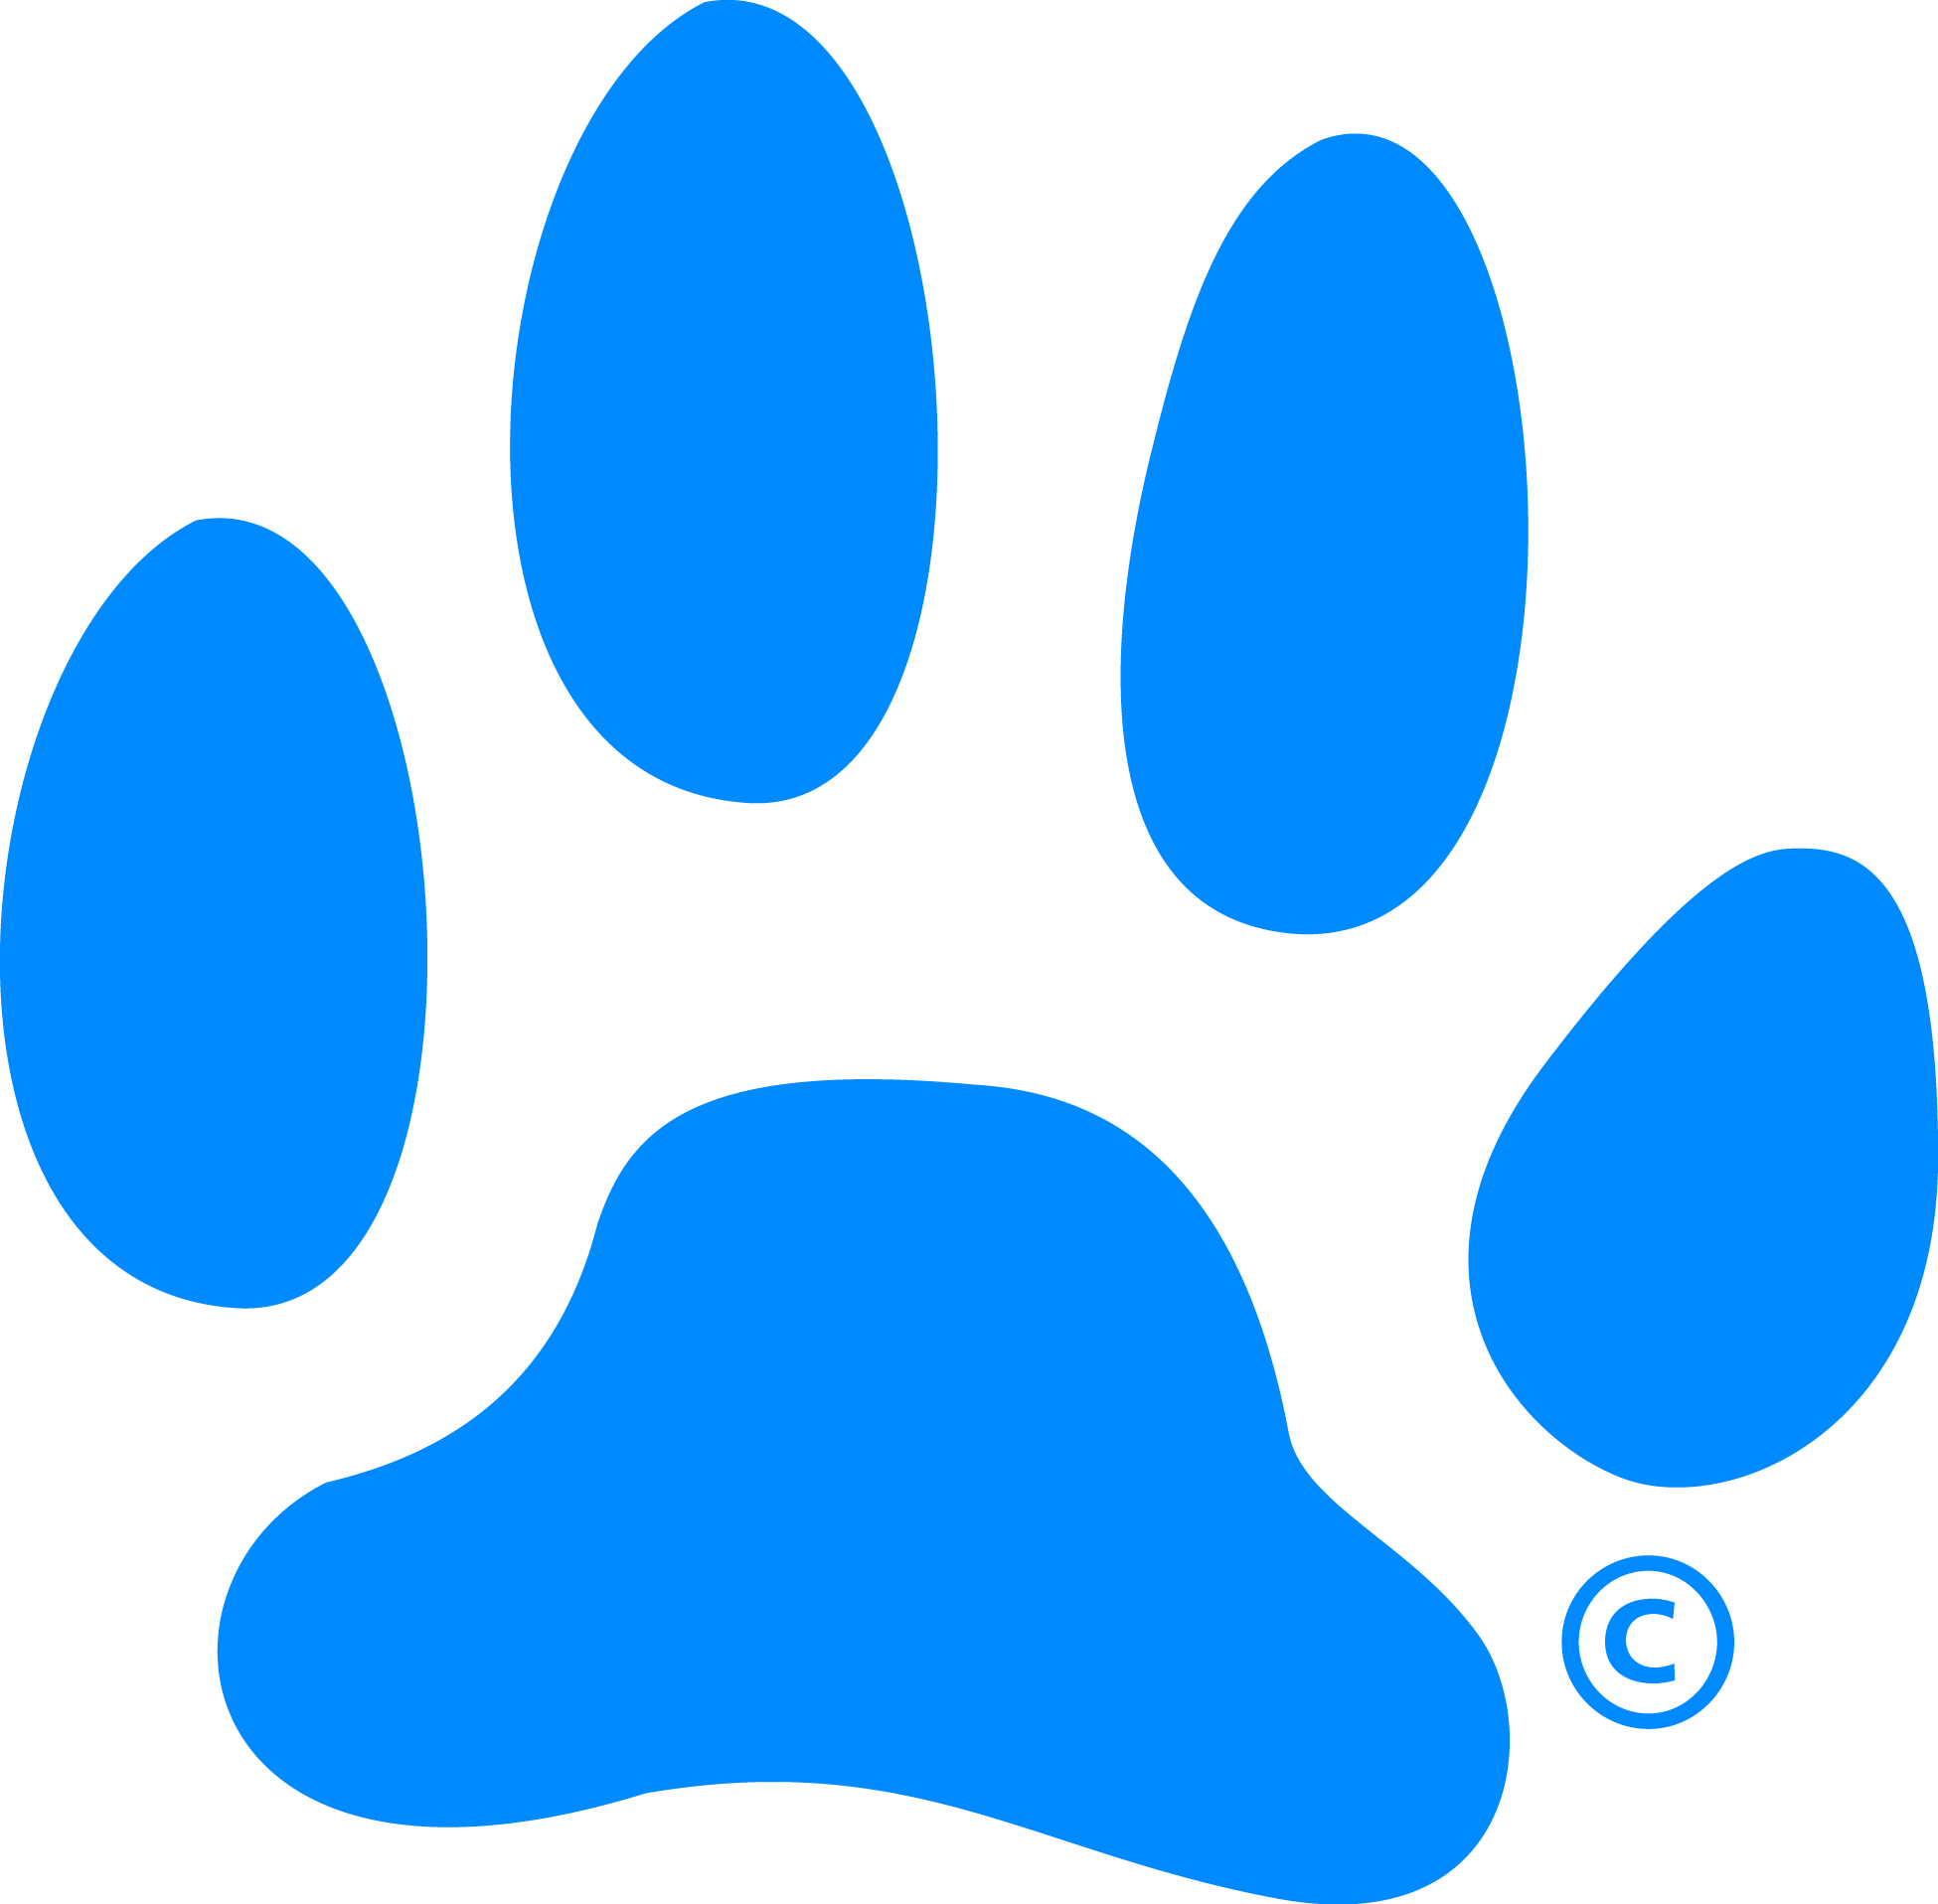 the gallery for gt blue paw print logo starts with b